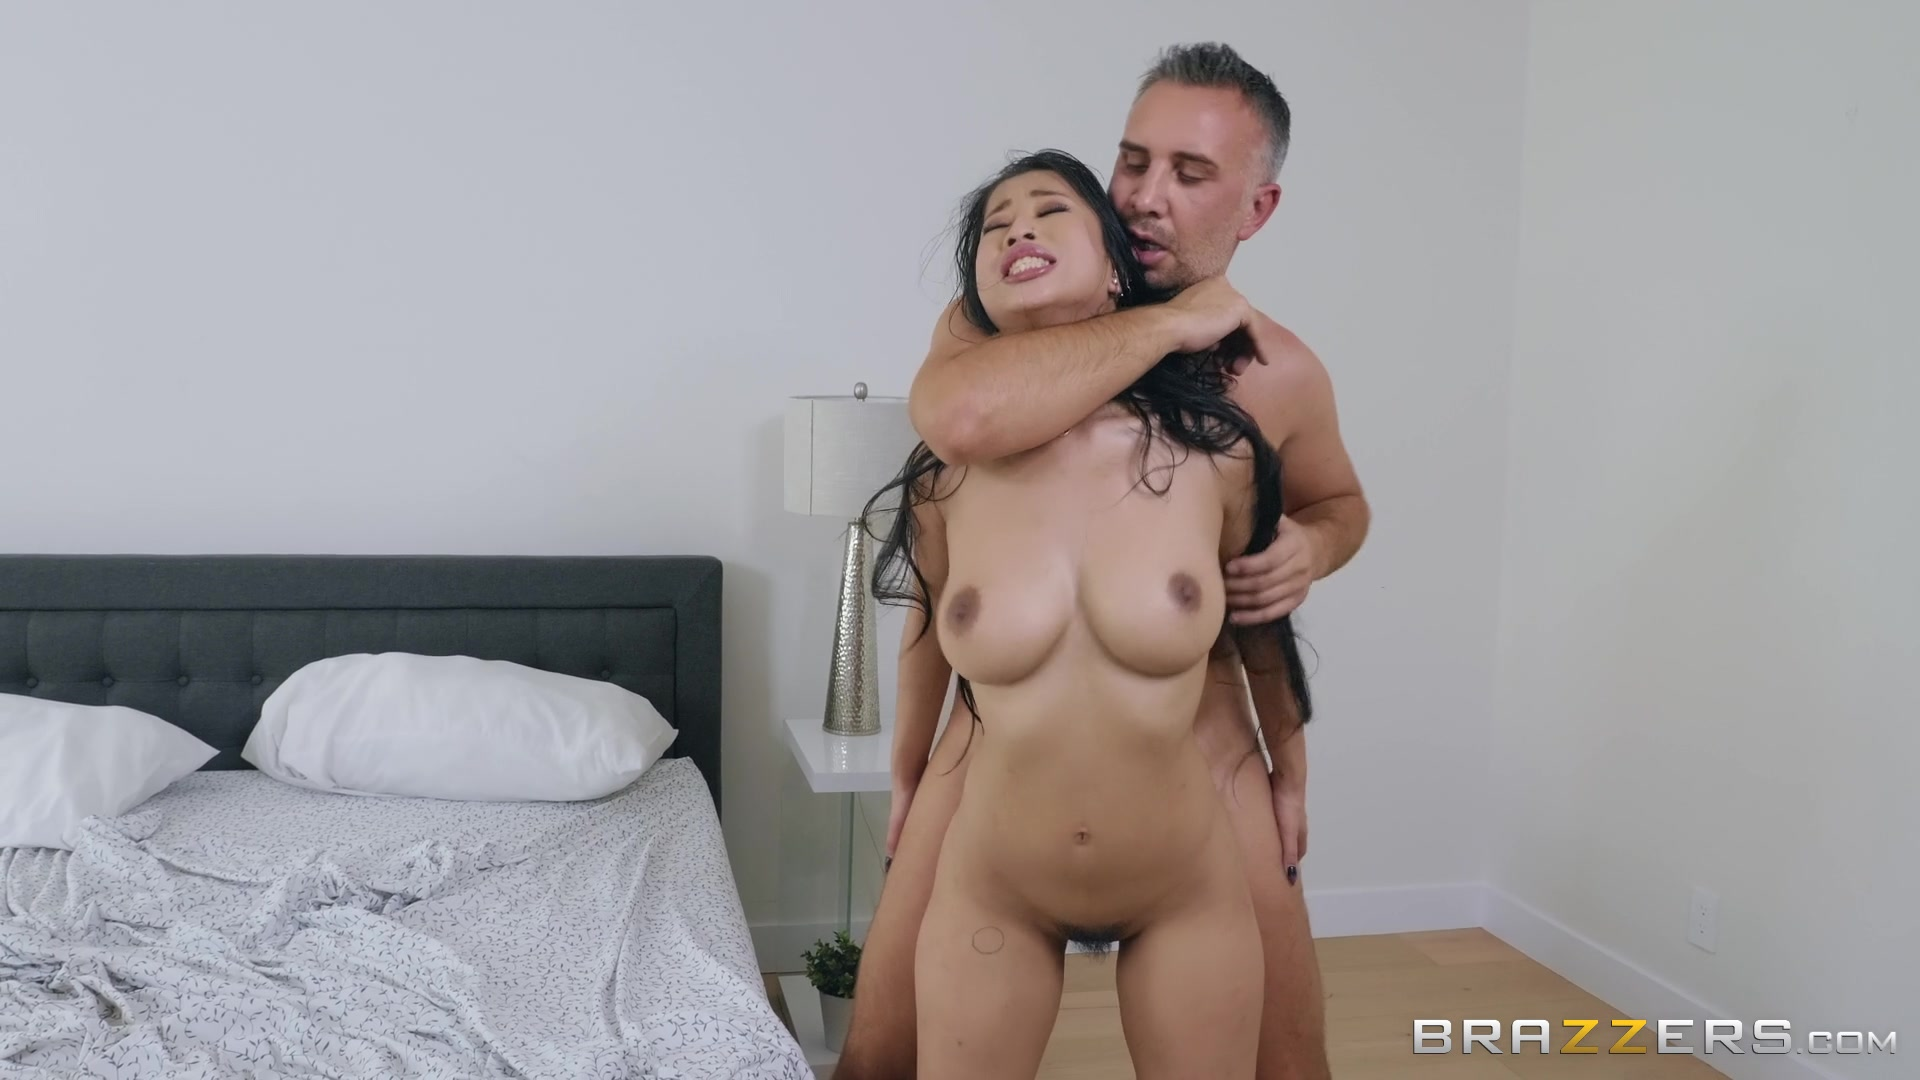 After a blowjob Jade Kush got her tight pussy fucked on the bed